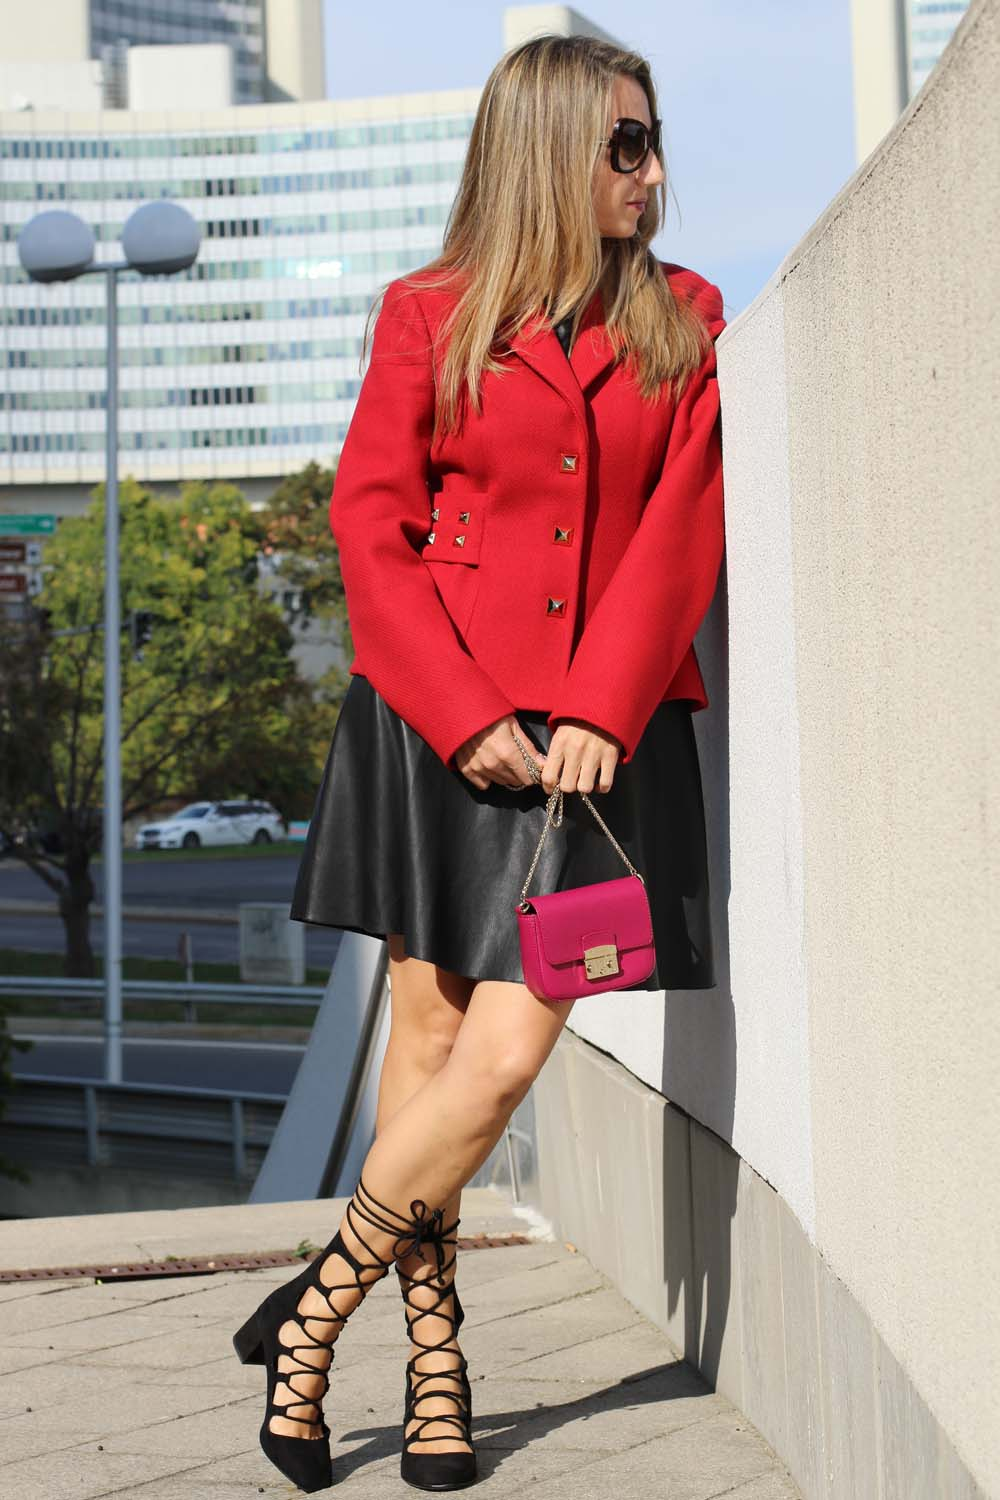 colourclub-outfit-moschino-blazer-lether-dress-furla-bag2